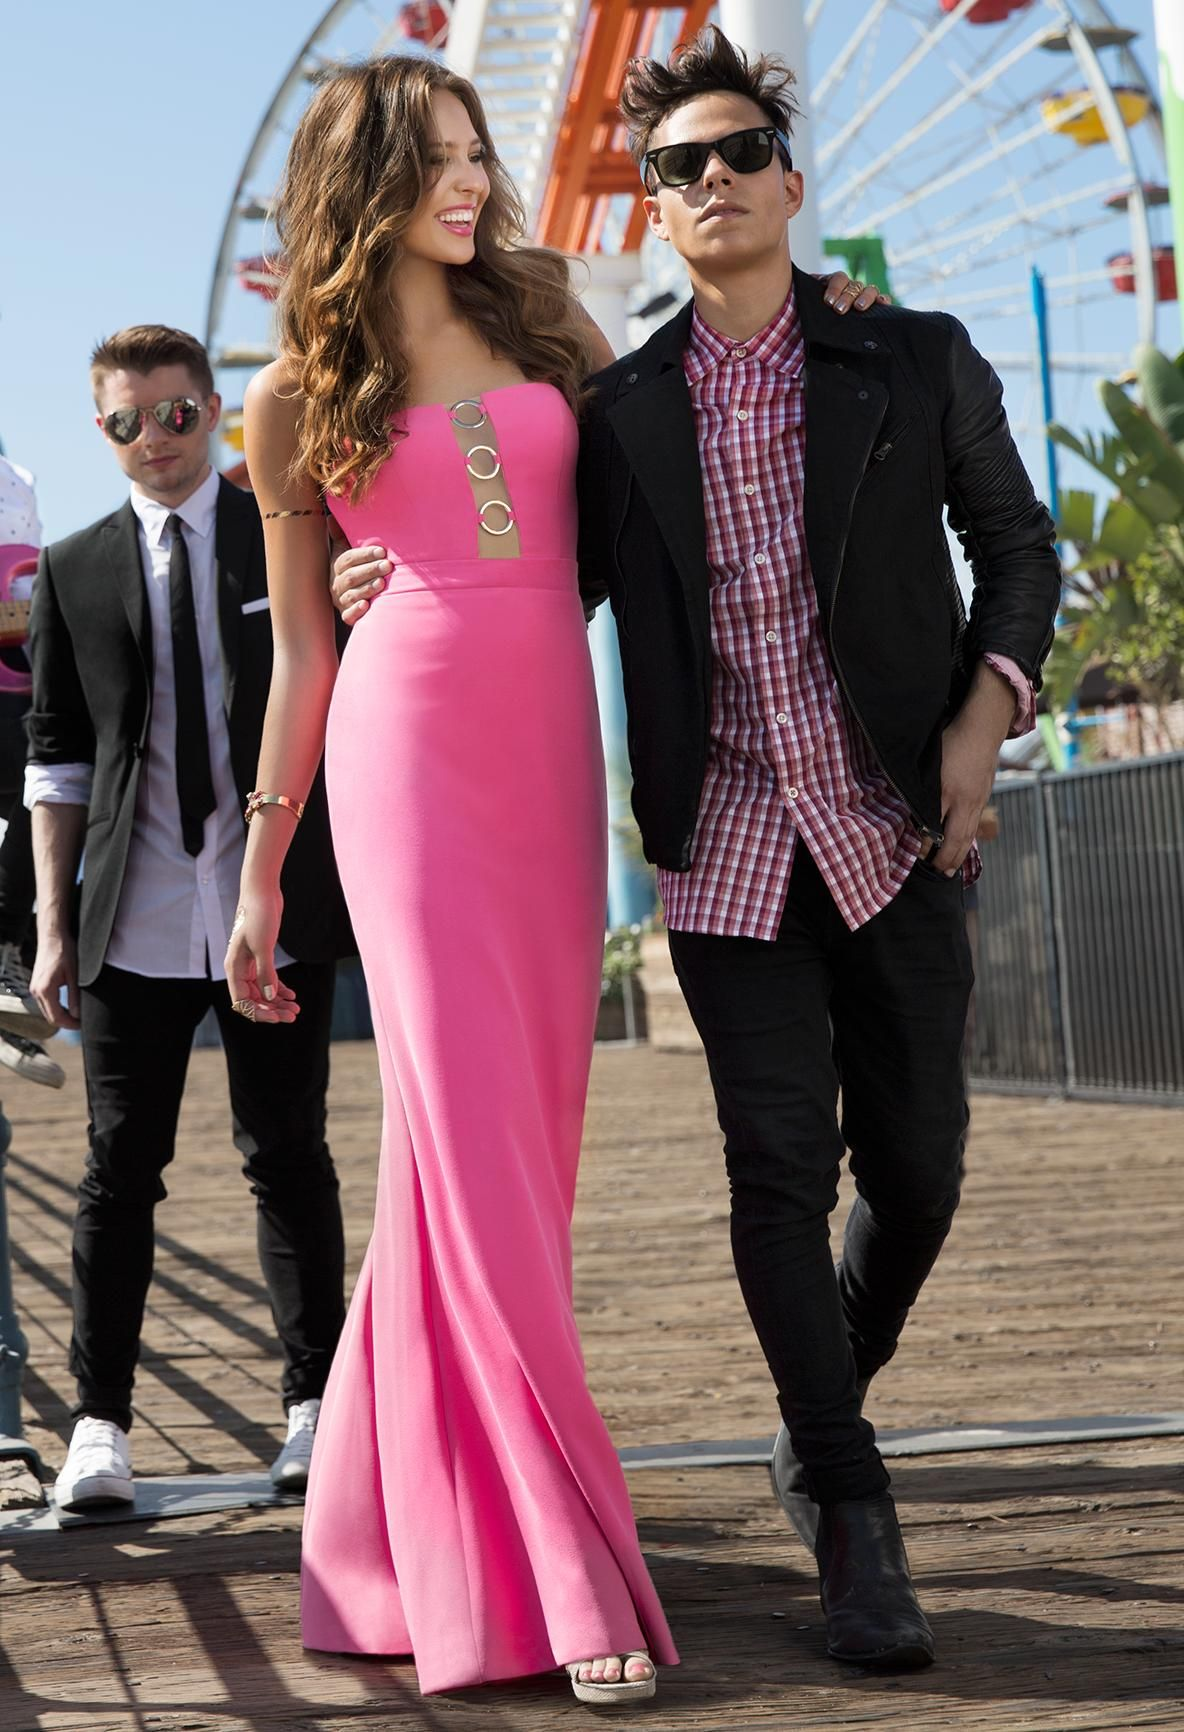 Fun in the Cali sun with Midnight Red! #camillelavie #CLVprom ...